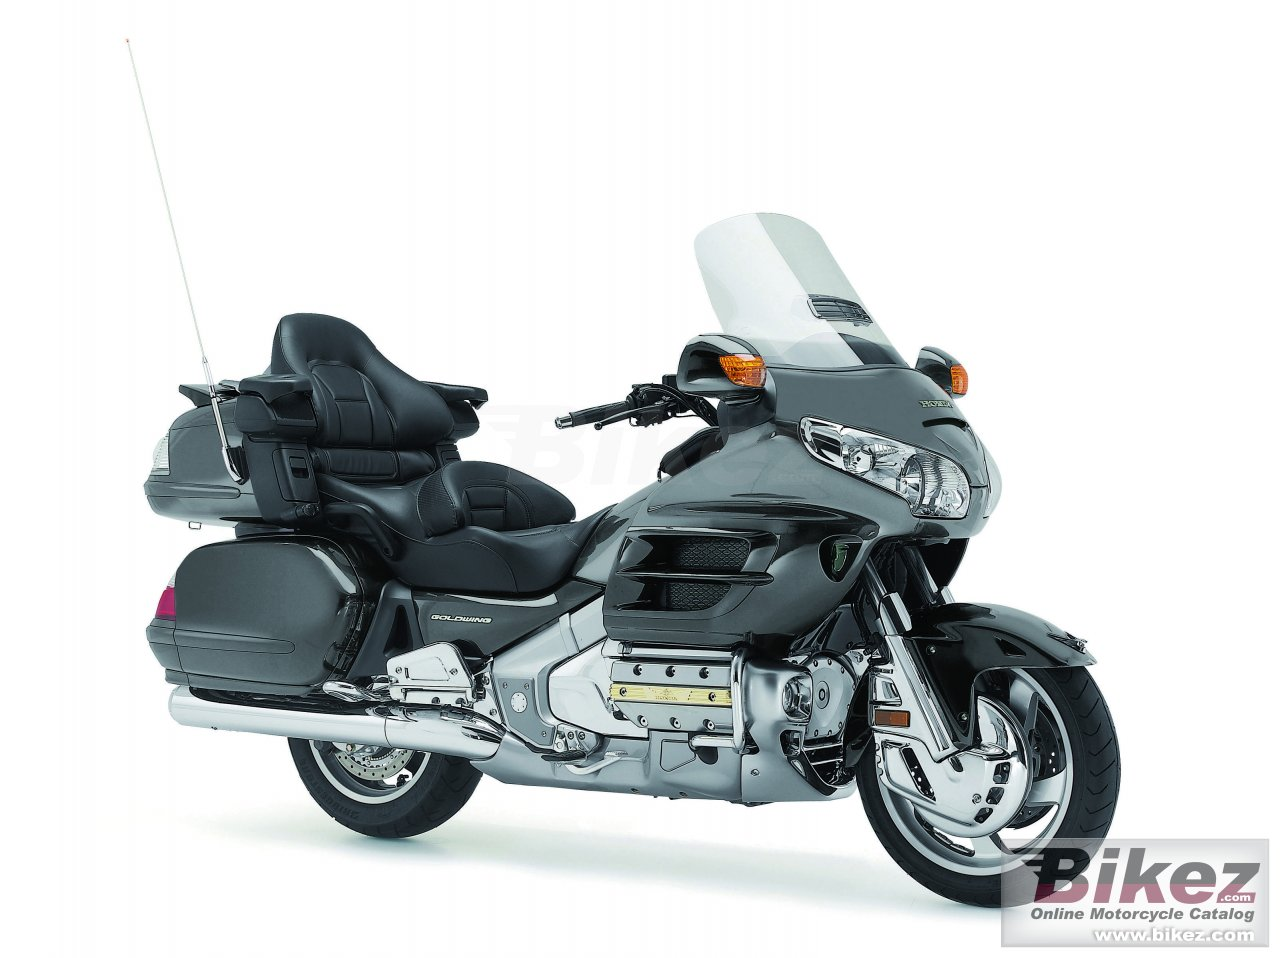 Big Honda gold wing airbag picture and wallpaper from Bikez.com